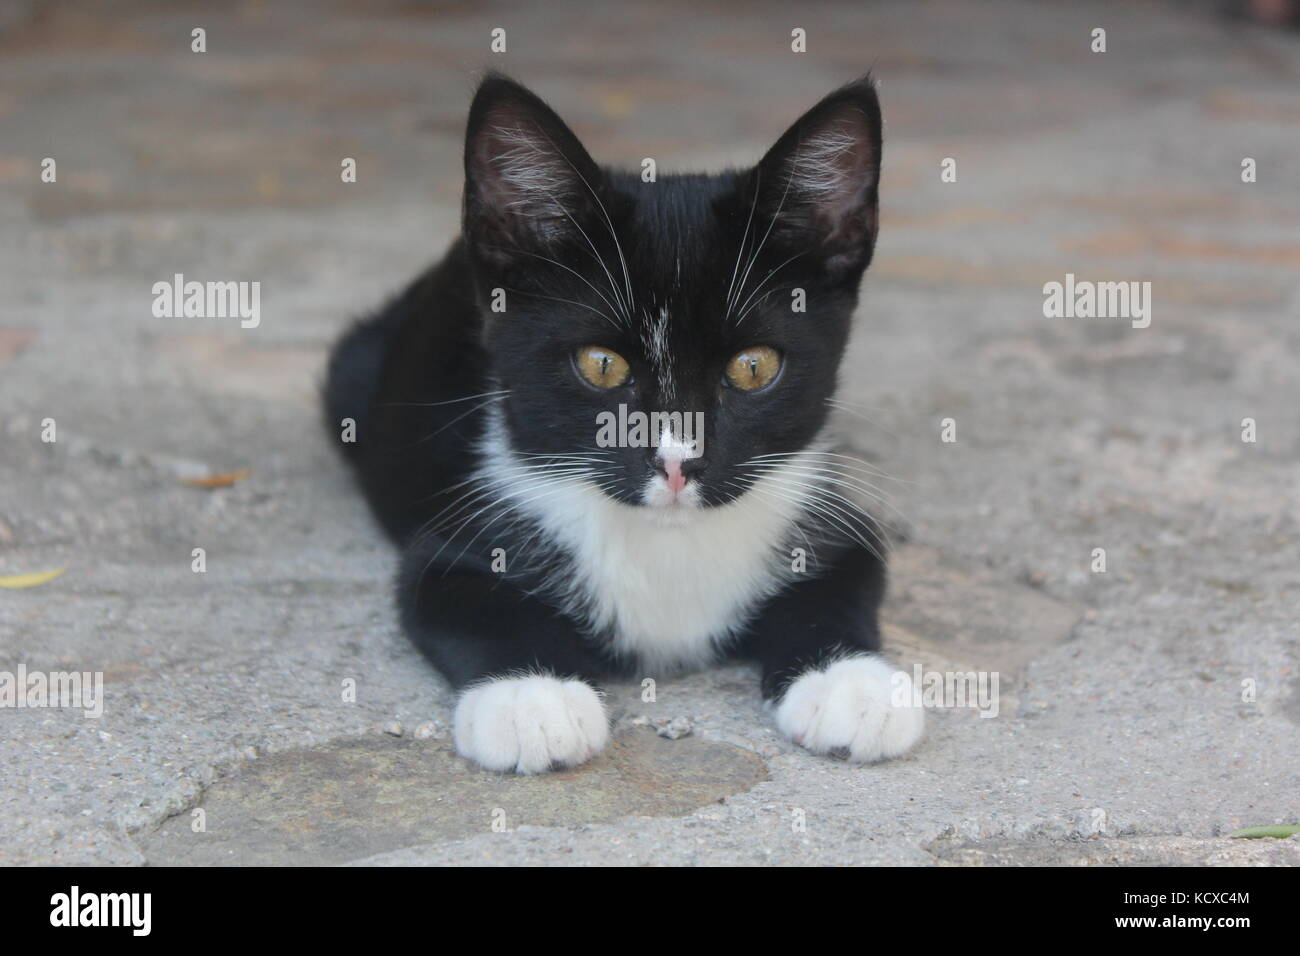 Black and white kitten with yellow eyes crouches on a stone floor. - Stock Image